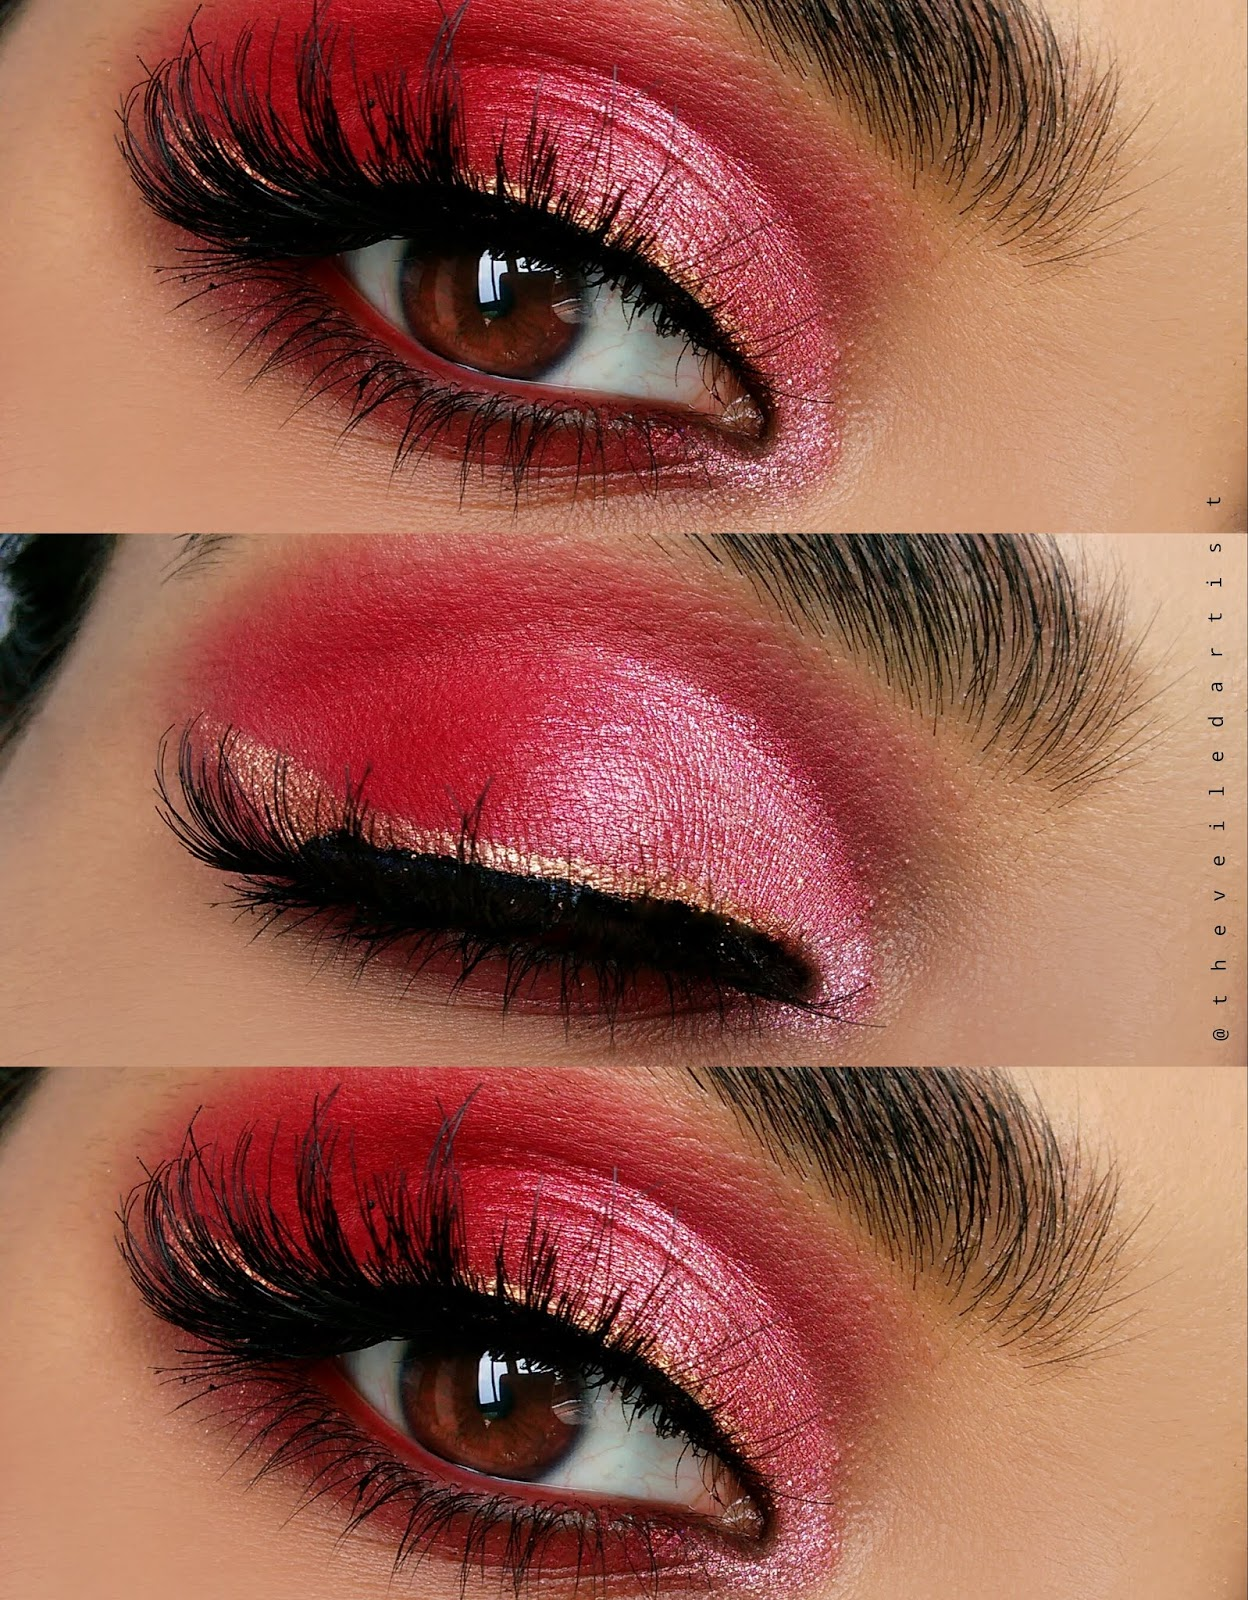 Red Semi Cut Crease Tutorial (Instagram makeup trend): The Veiled Artist